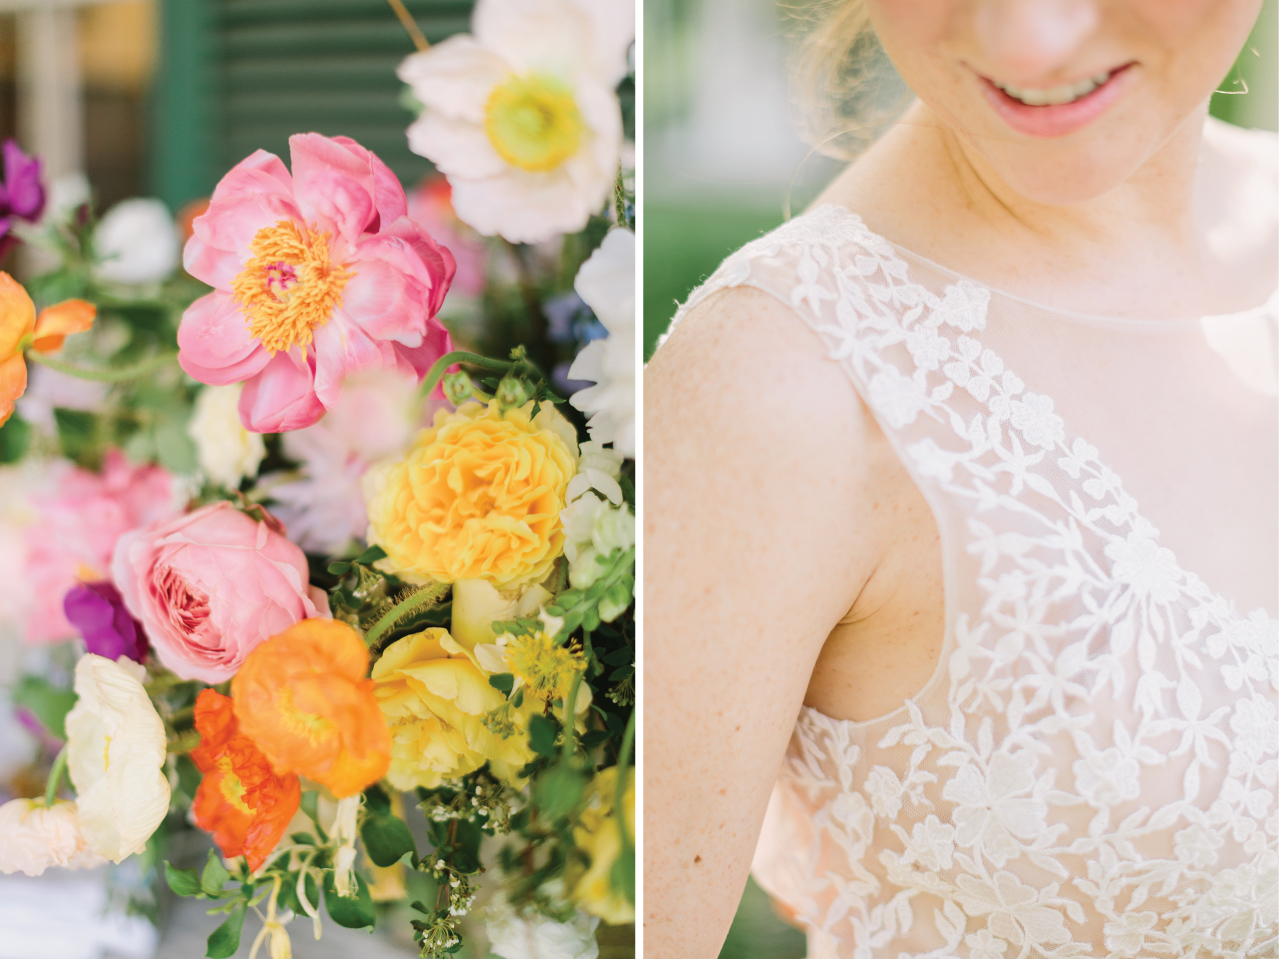 Gorgeous colorful blooms and delicate wedding gown details make for the dreamiest summer wedding.